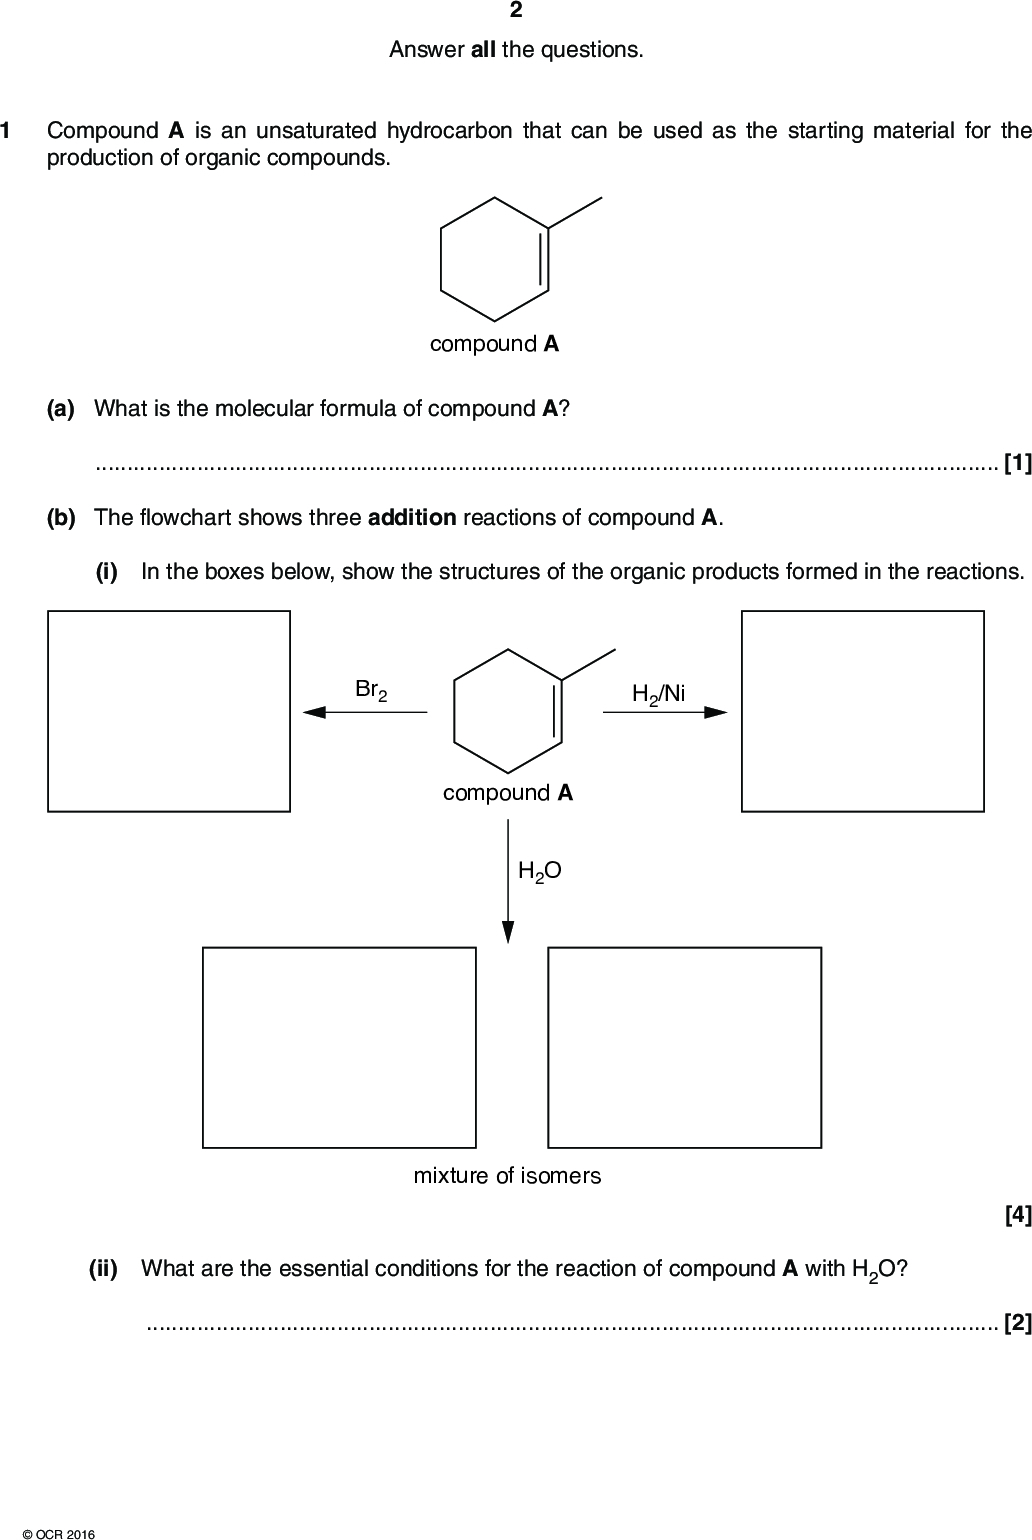 Answer all the questions. 1 Compound A is an unsaturated hydrocarbon that can be used as the starting material for the production of organic compounds. compound A (a) What is the molecular formula of compound A?[1] (b) The flowchart shows three addition reactions of compound A. (i) In the boxes below, show the structures of the organic products formed in the reactions. Br2 H2/Ni compound A H2O mixture of isomers [4] (ii) What are the essential conditions for the reaction of compound A with H2O?[2]OCR 2016<br />  (iii) Using curly arrows, outline the mechanism for the reaction of compound A with Br2. (iv) Name the mechanism in part (iii).[1] [Total: 11] [3]OCR 2016 Turn over<br />